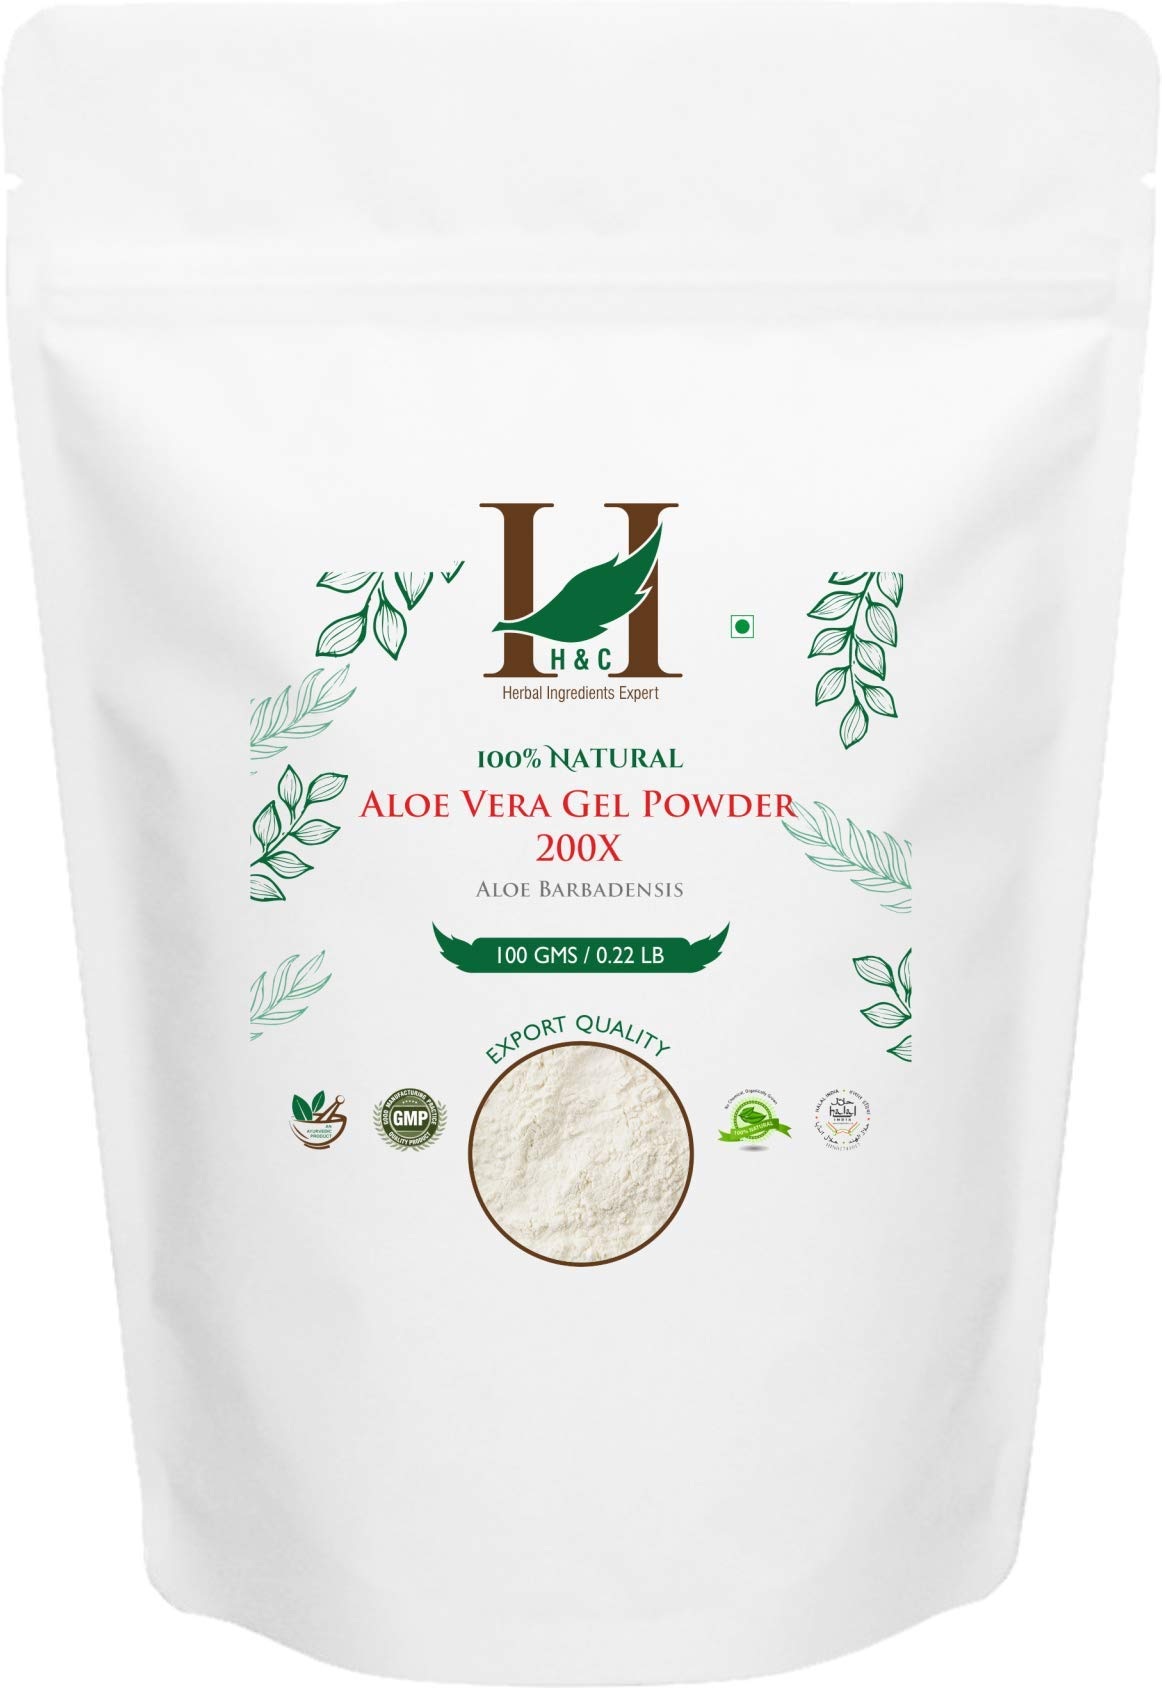 100% Pure Aloe Vera Gel Powder 200X - Highly Concentrated Spray Dried Gel Powder- (100g) Suitable for Health and Personal Care formulations